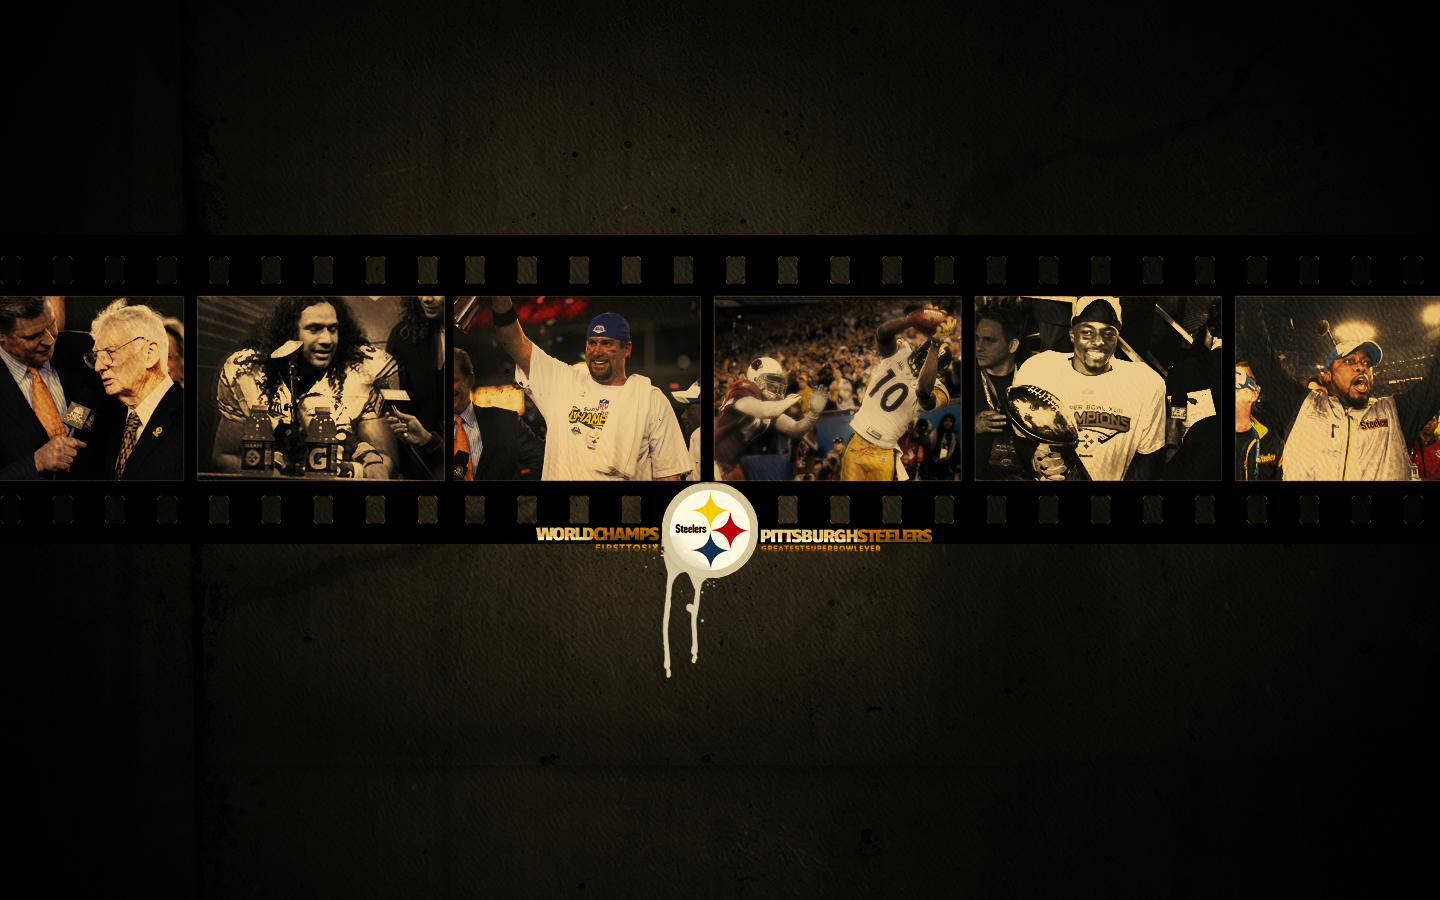 Pittsburgh Steelers wallpaper wallpaper Pittsburgh Steelers 1440x900